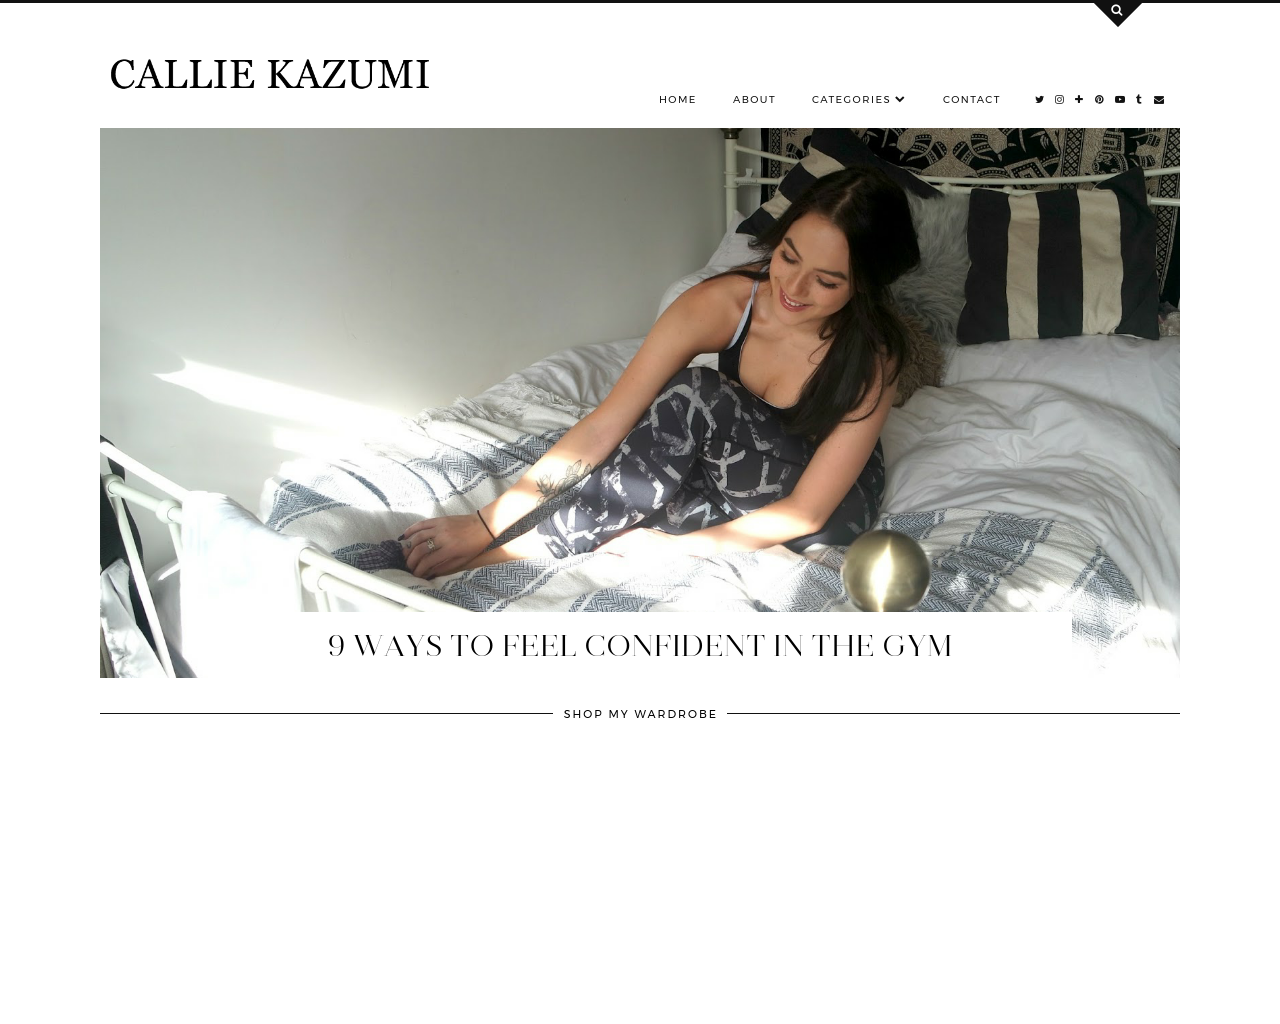 Callie-Kazumi-Advertising-Reviews-Pricing